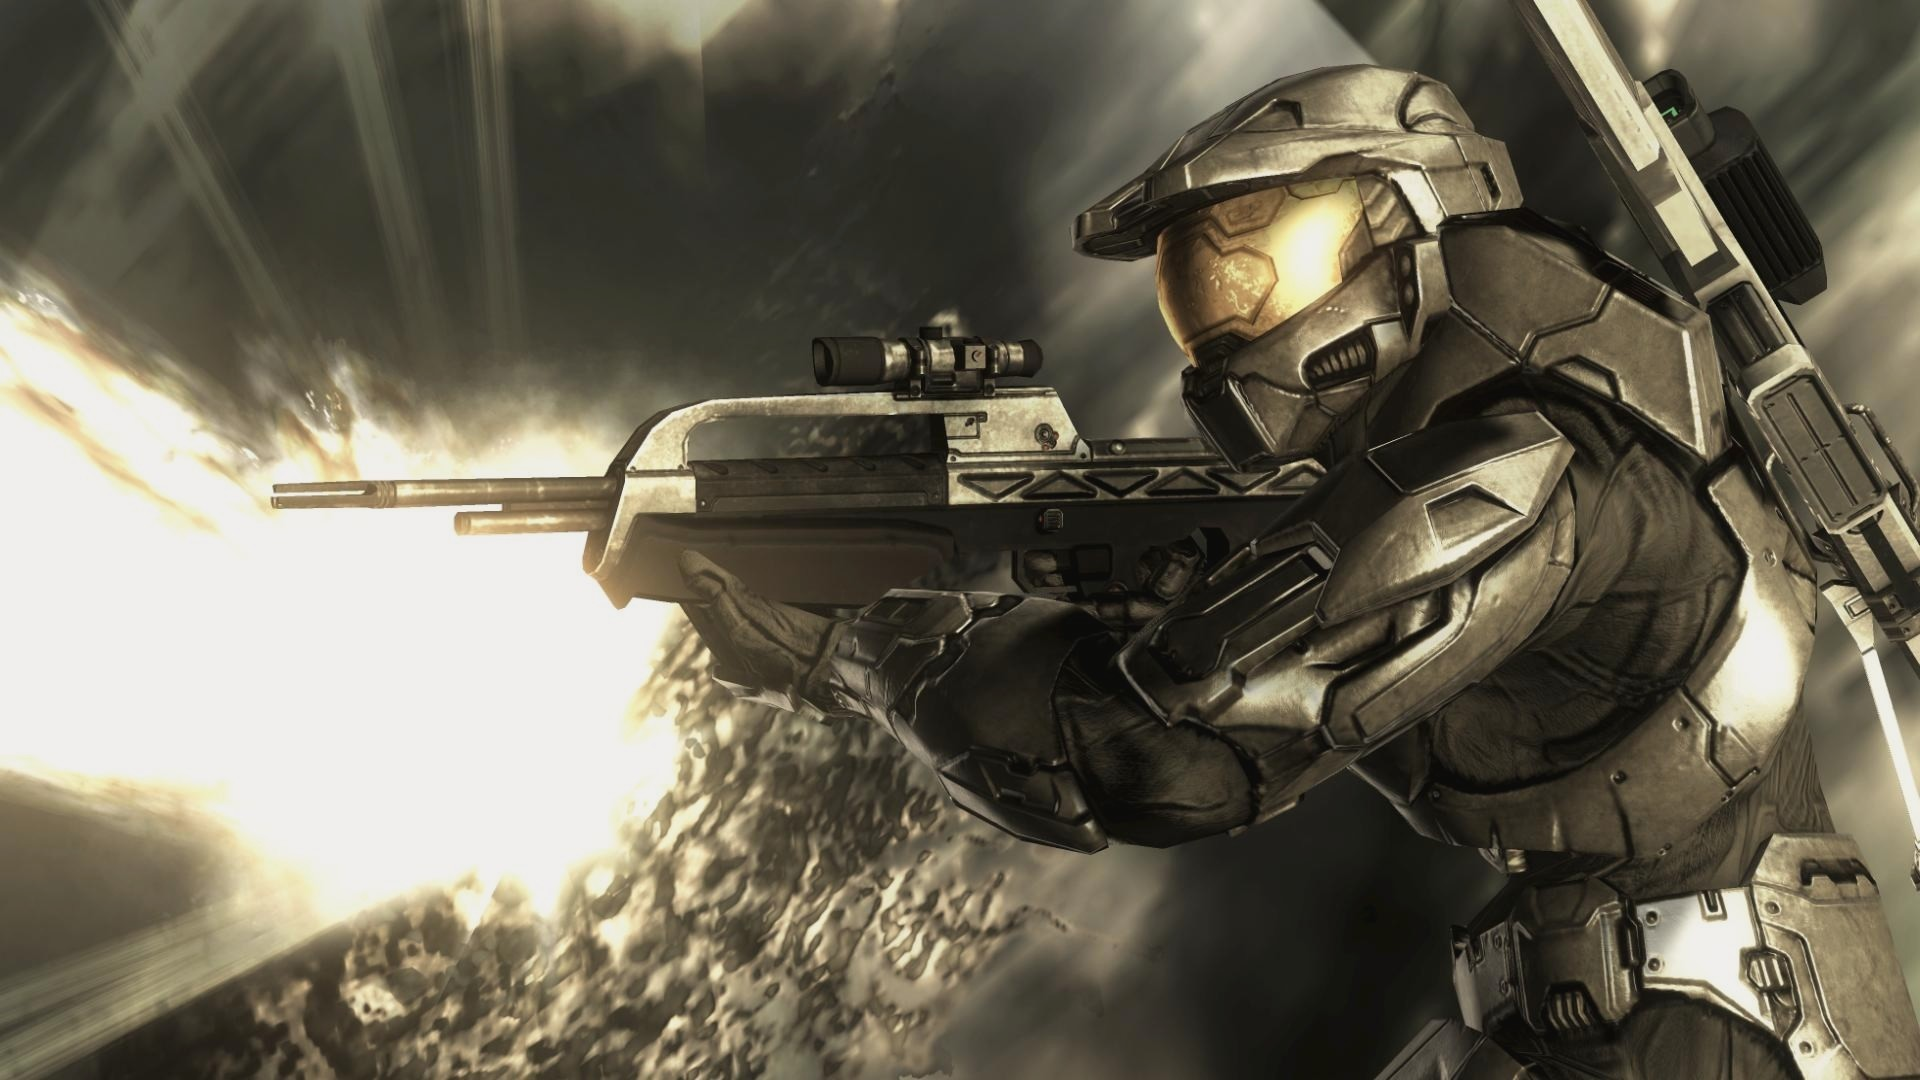 Halo 3 Wallpapers 69 Background Pictures